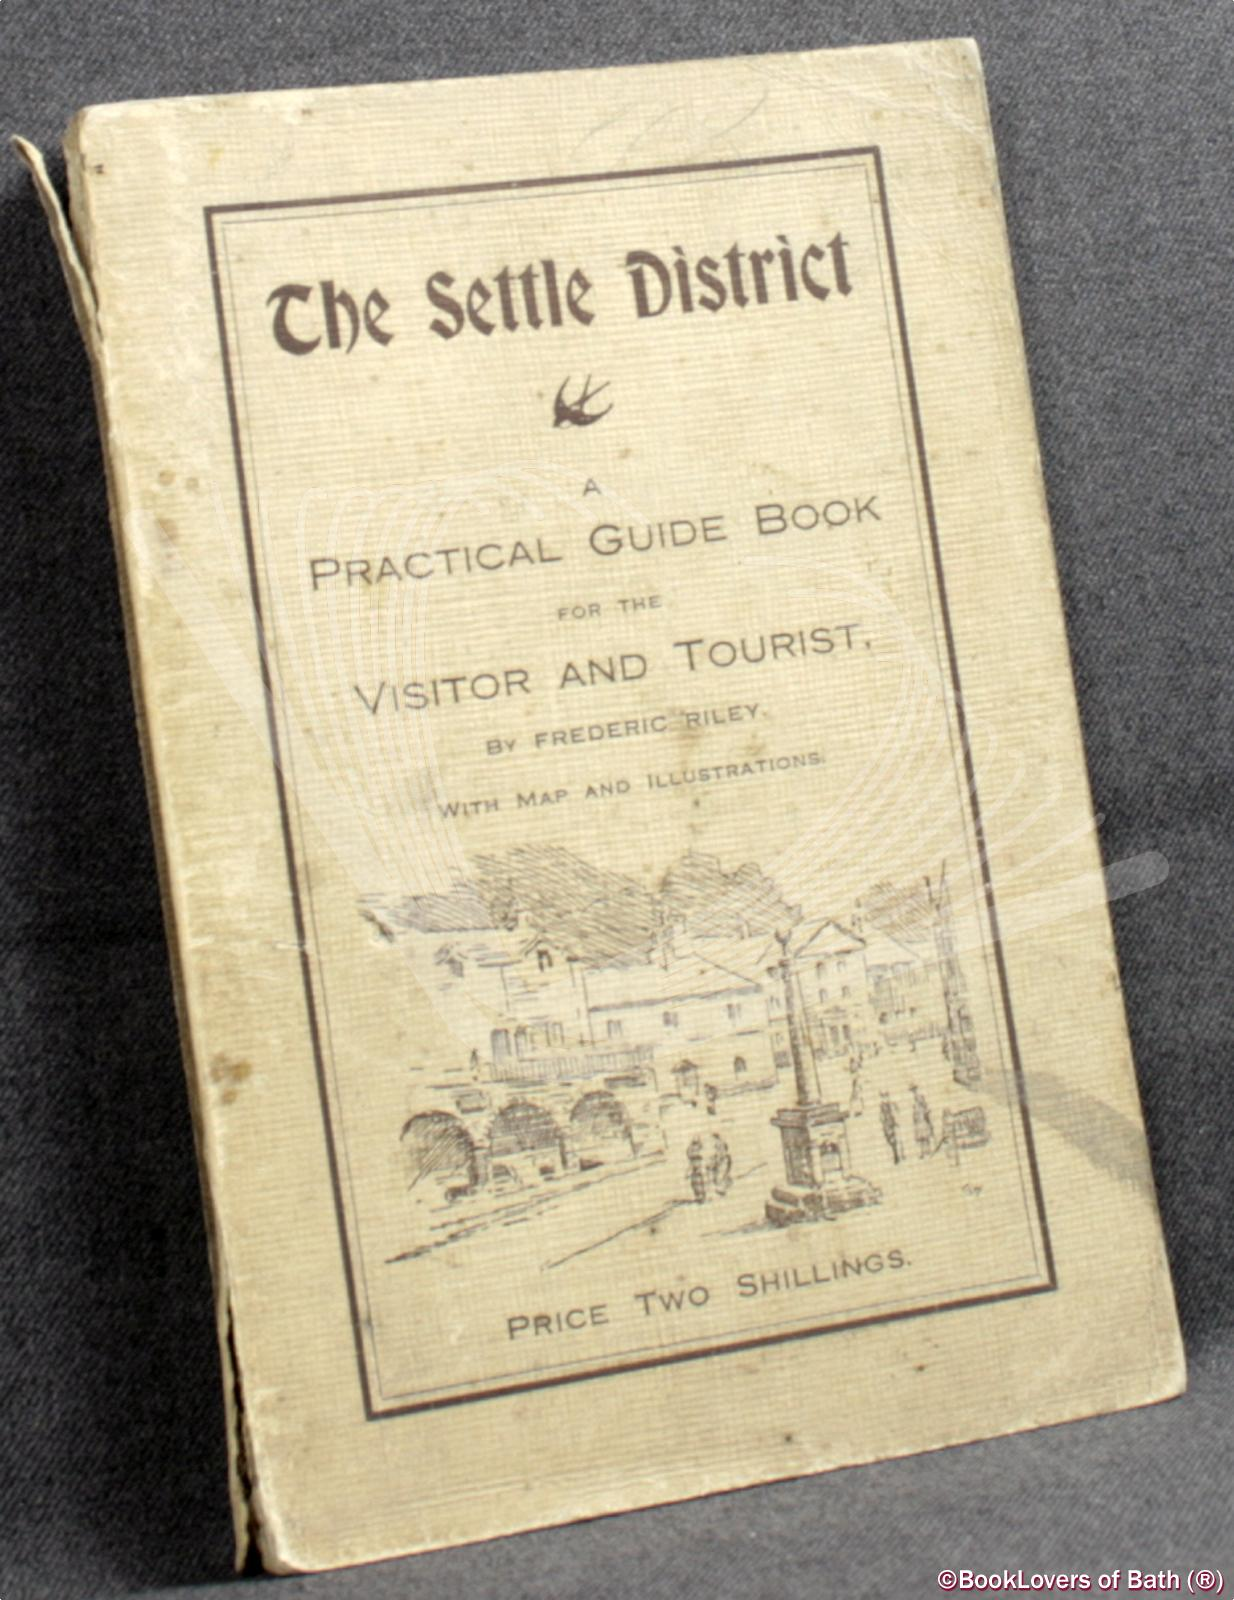 The Settle District: A Practical Guide Book for the Visitor and Tourist - Frederic Riley